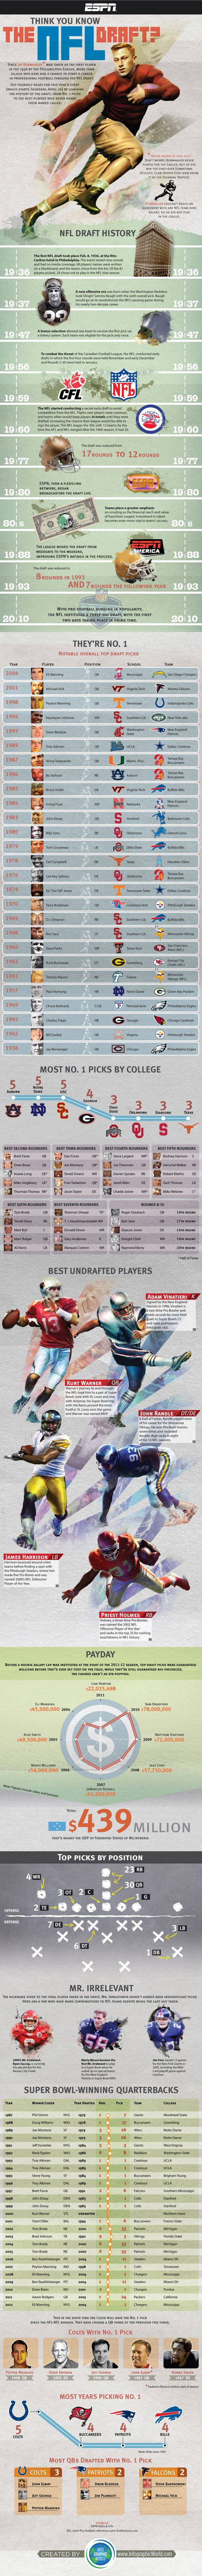 Fun Infographic #DraftDay 2012...A great history of the NFL Draft from ESPN #socialmedia